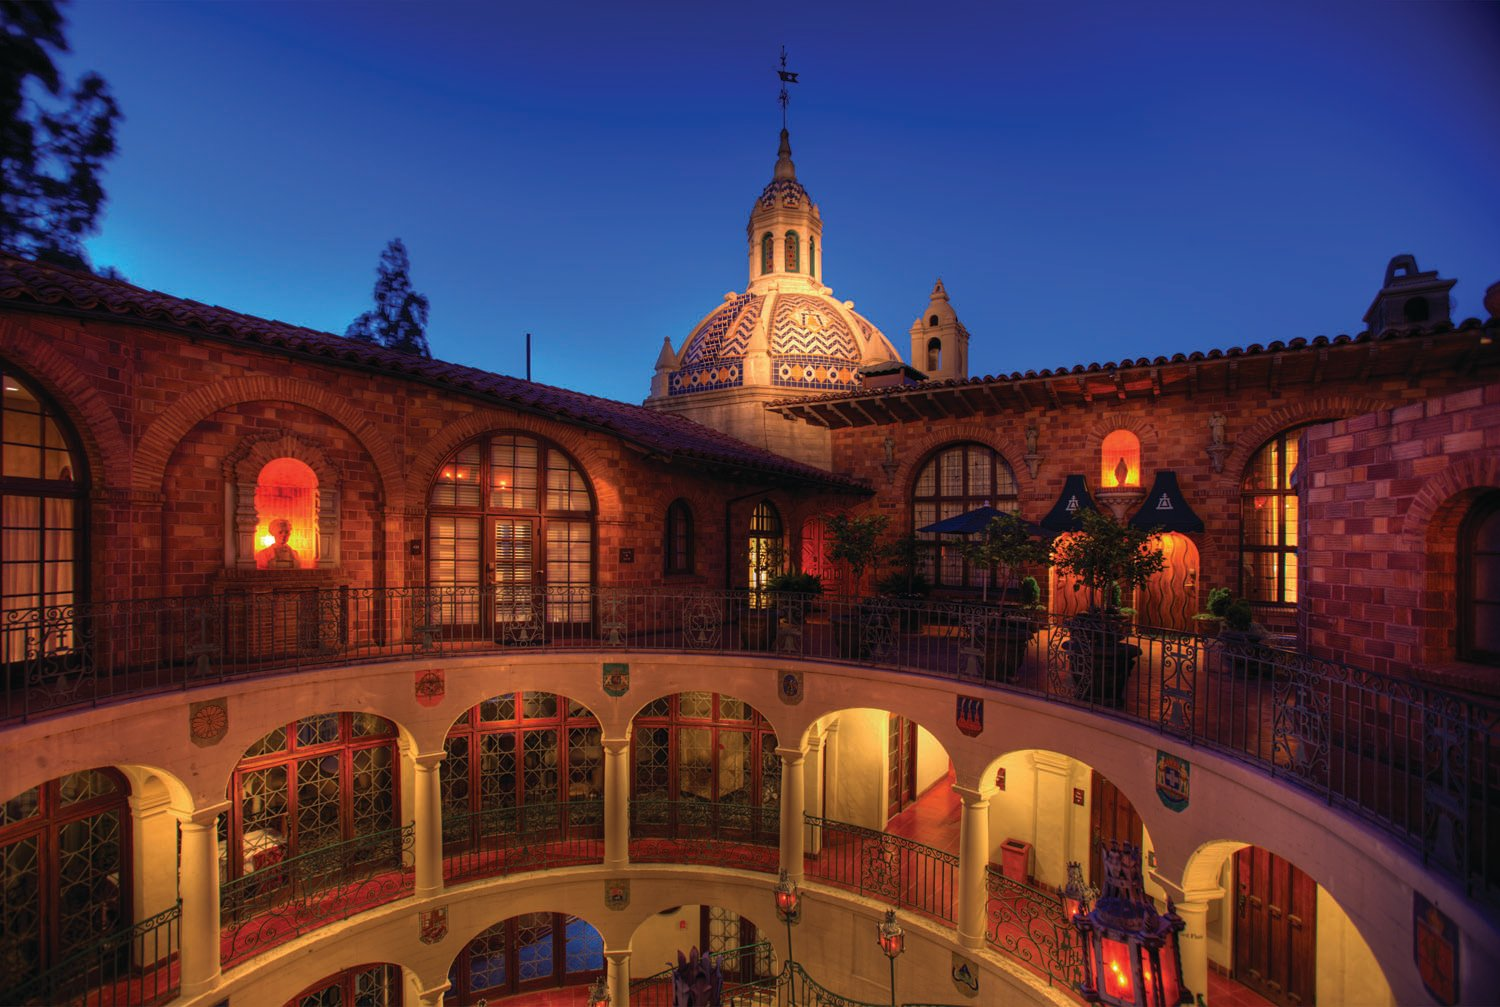 Riverside Mission Inn Rotunda